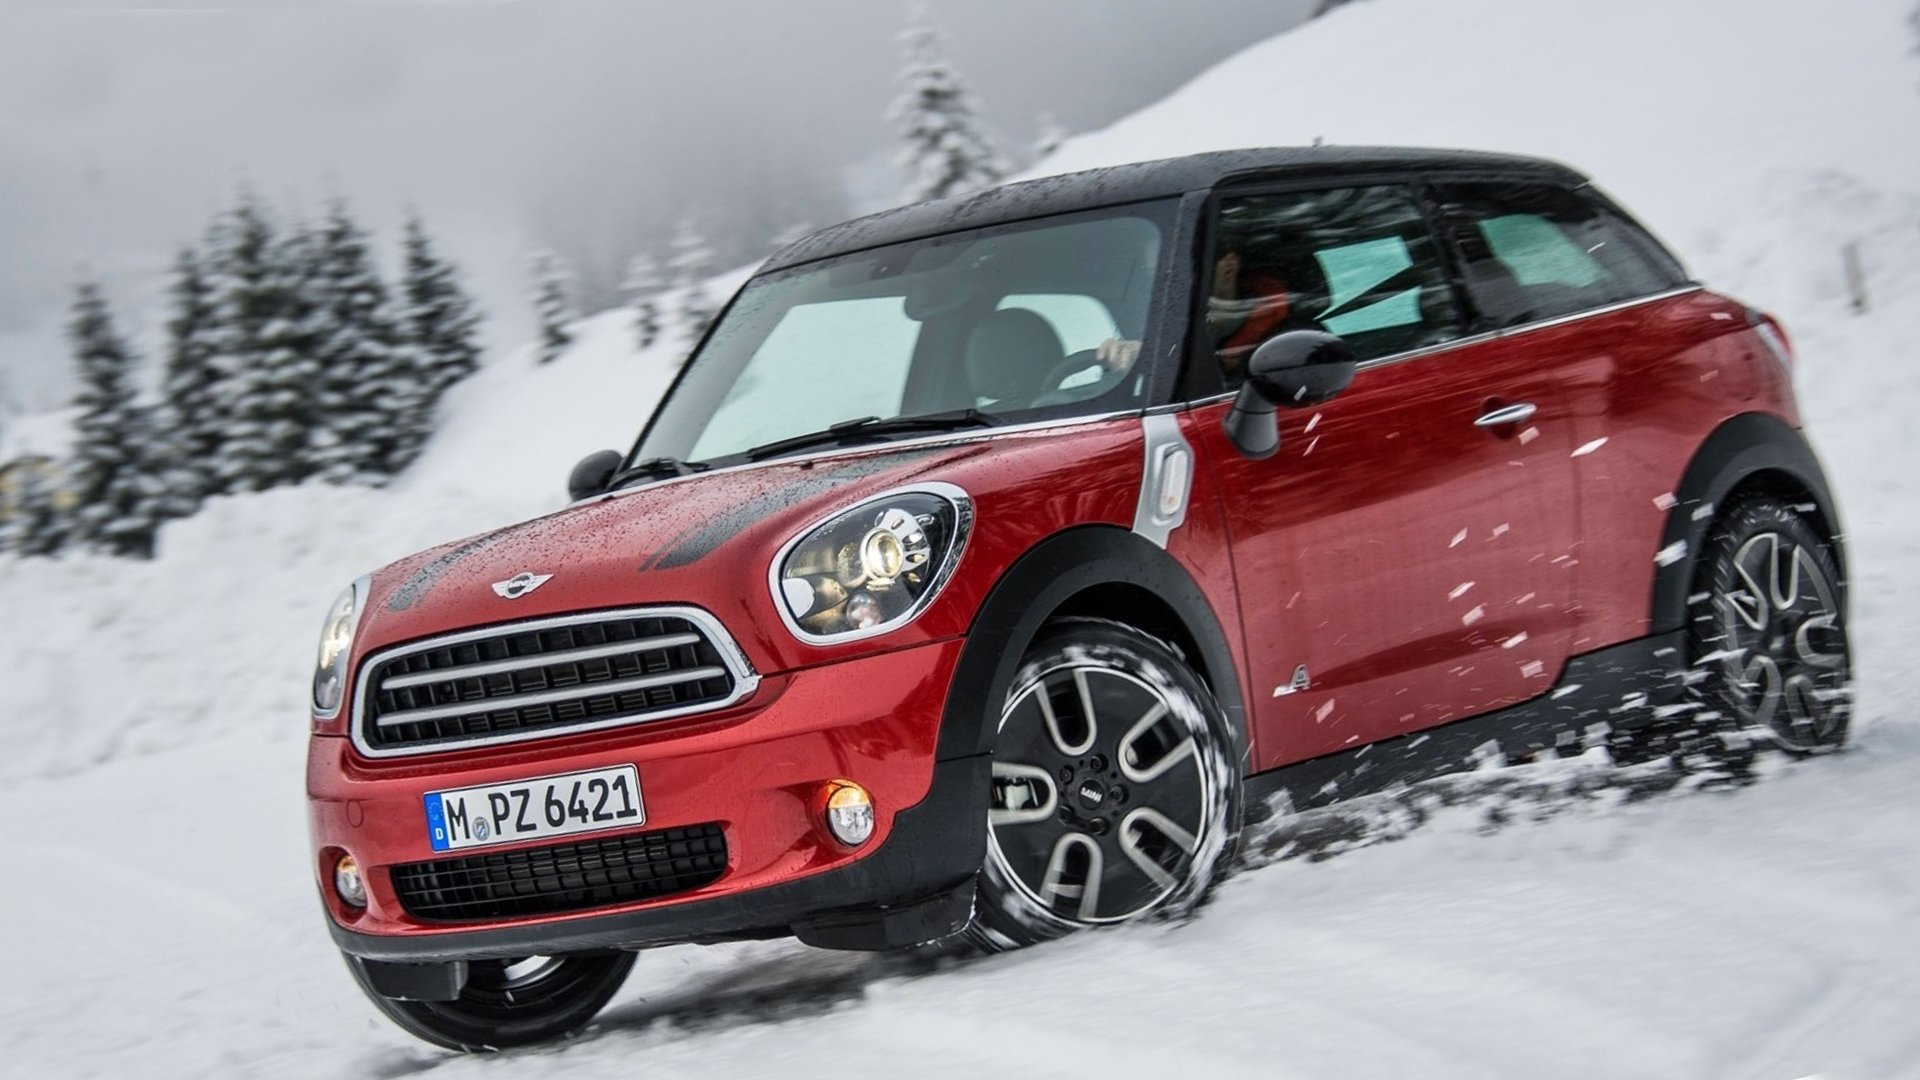 New 2019 MINI Paceman Wallpaper HD Desktop